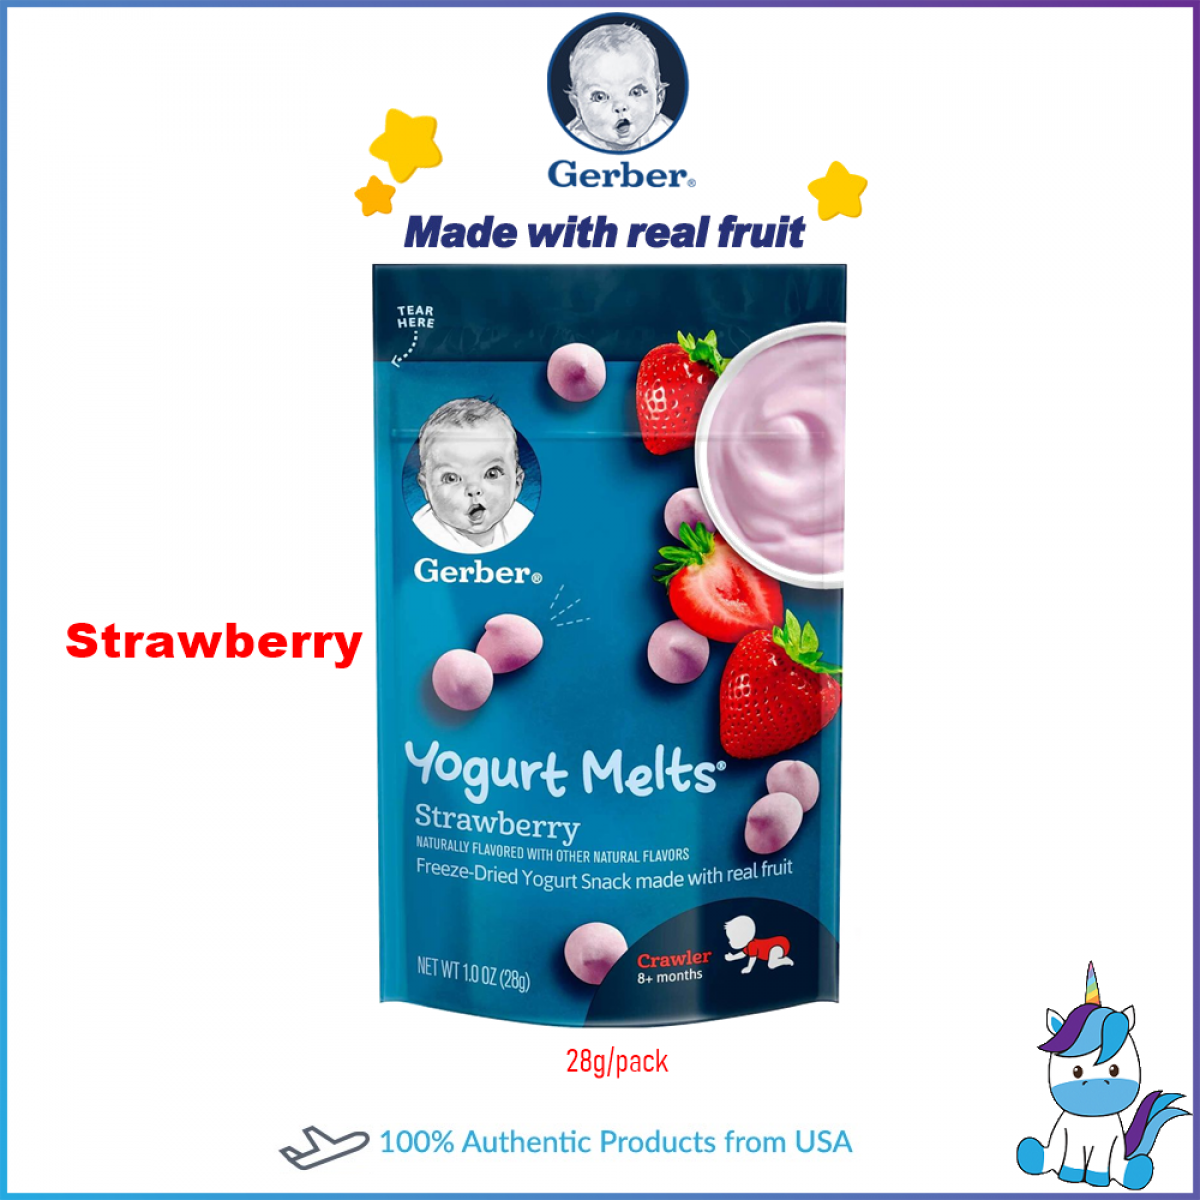 Gerber Yogurt Melts Freeze-Dried Yogurt Snack Made with Real Fruit 28g/pack